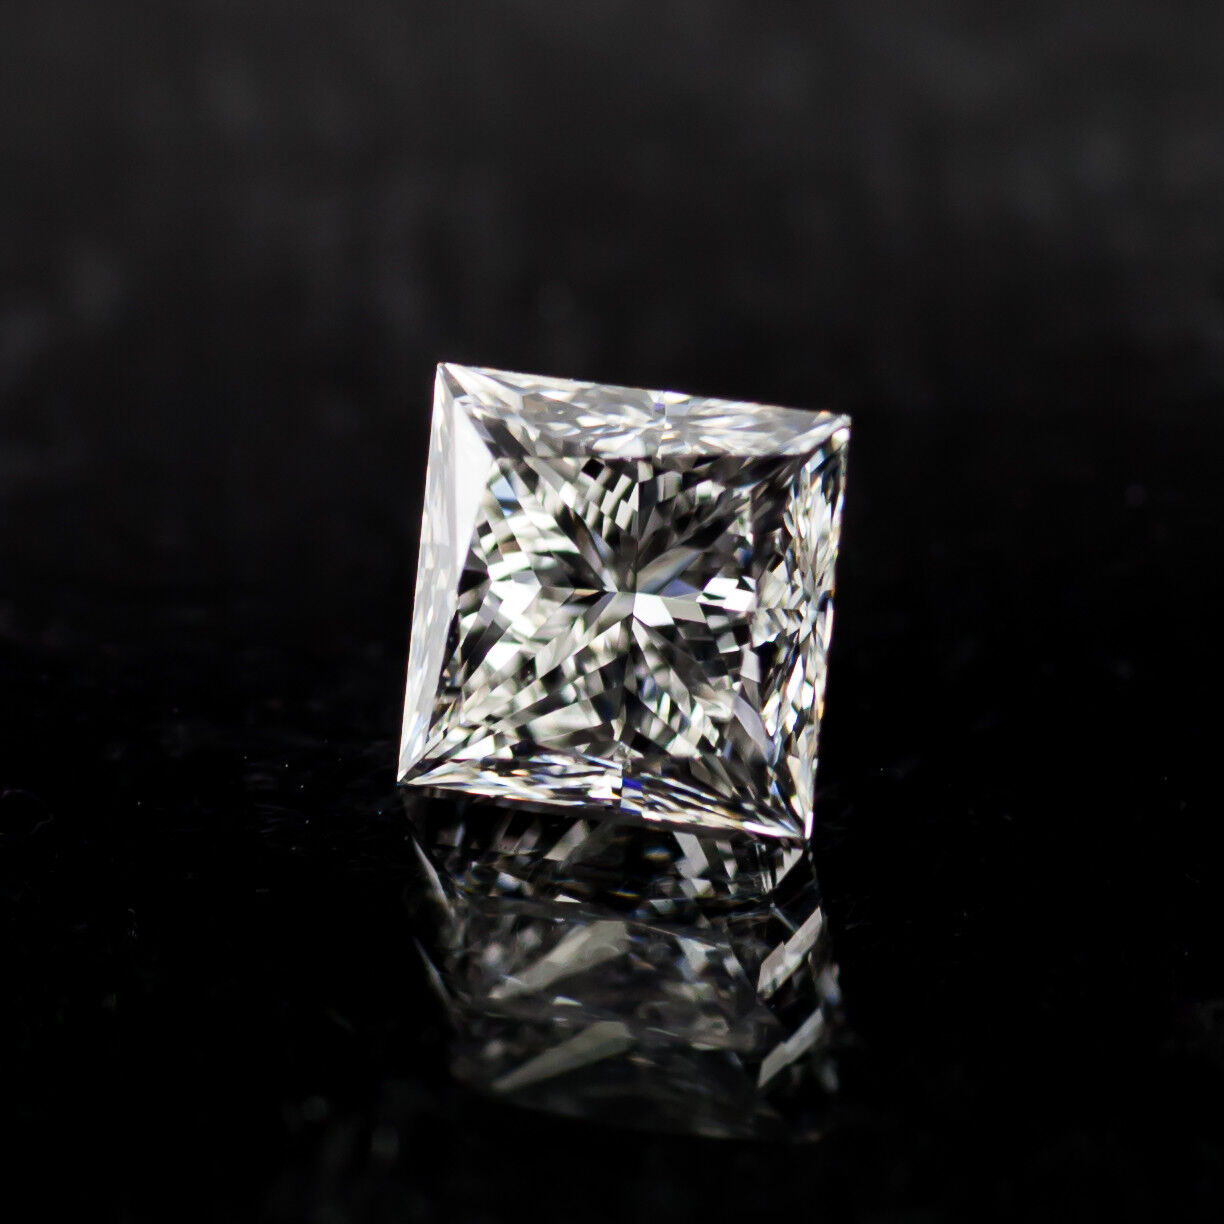 1.03 Carat Loose I / VS1 Princess Cut Diamond GIA Certified